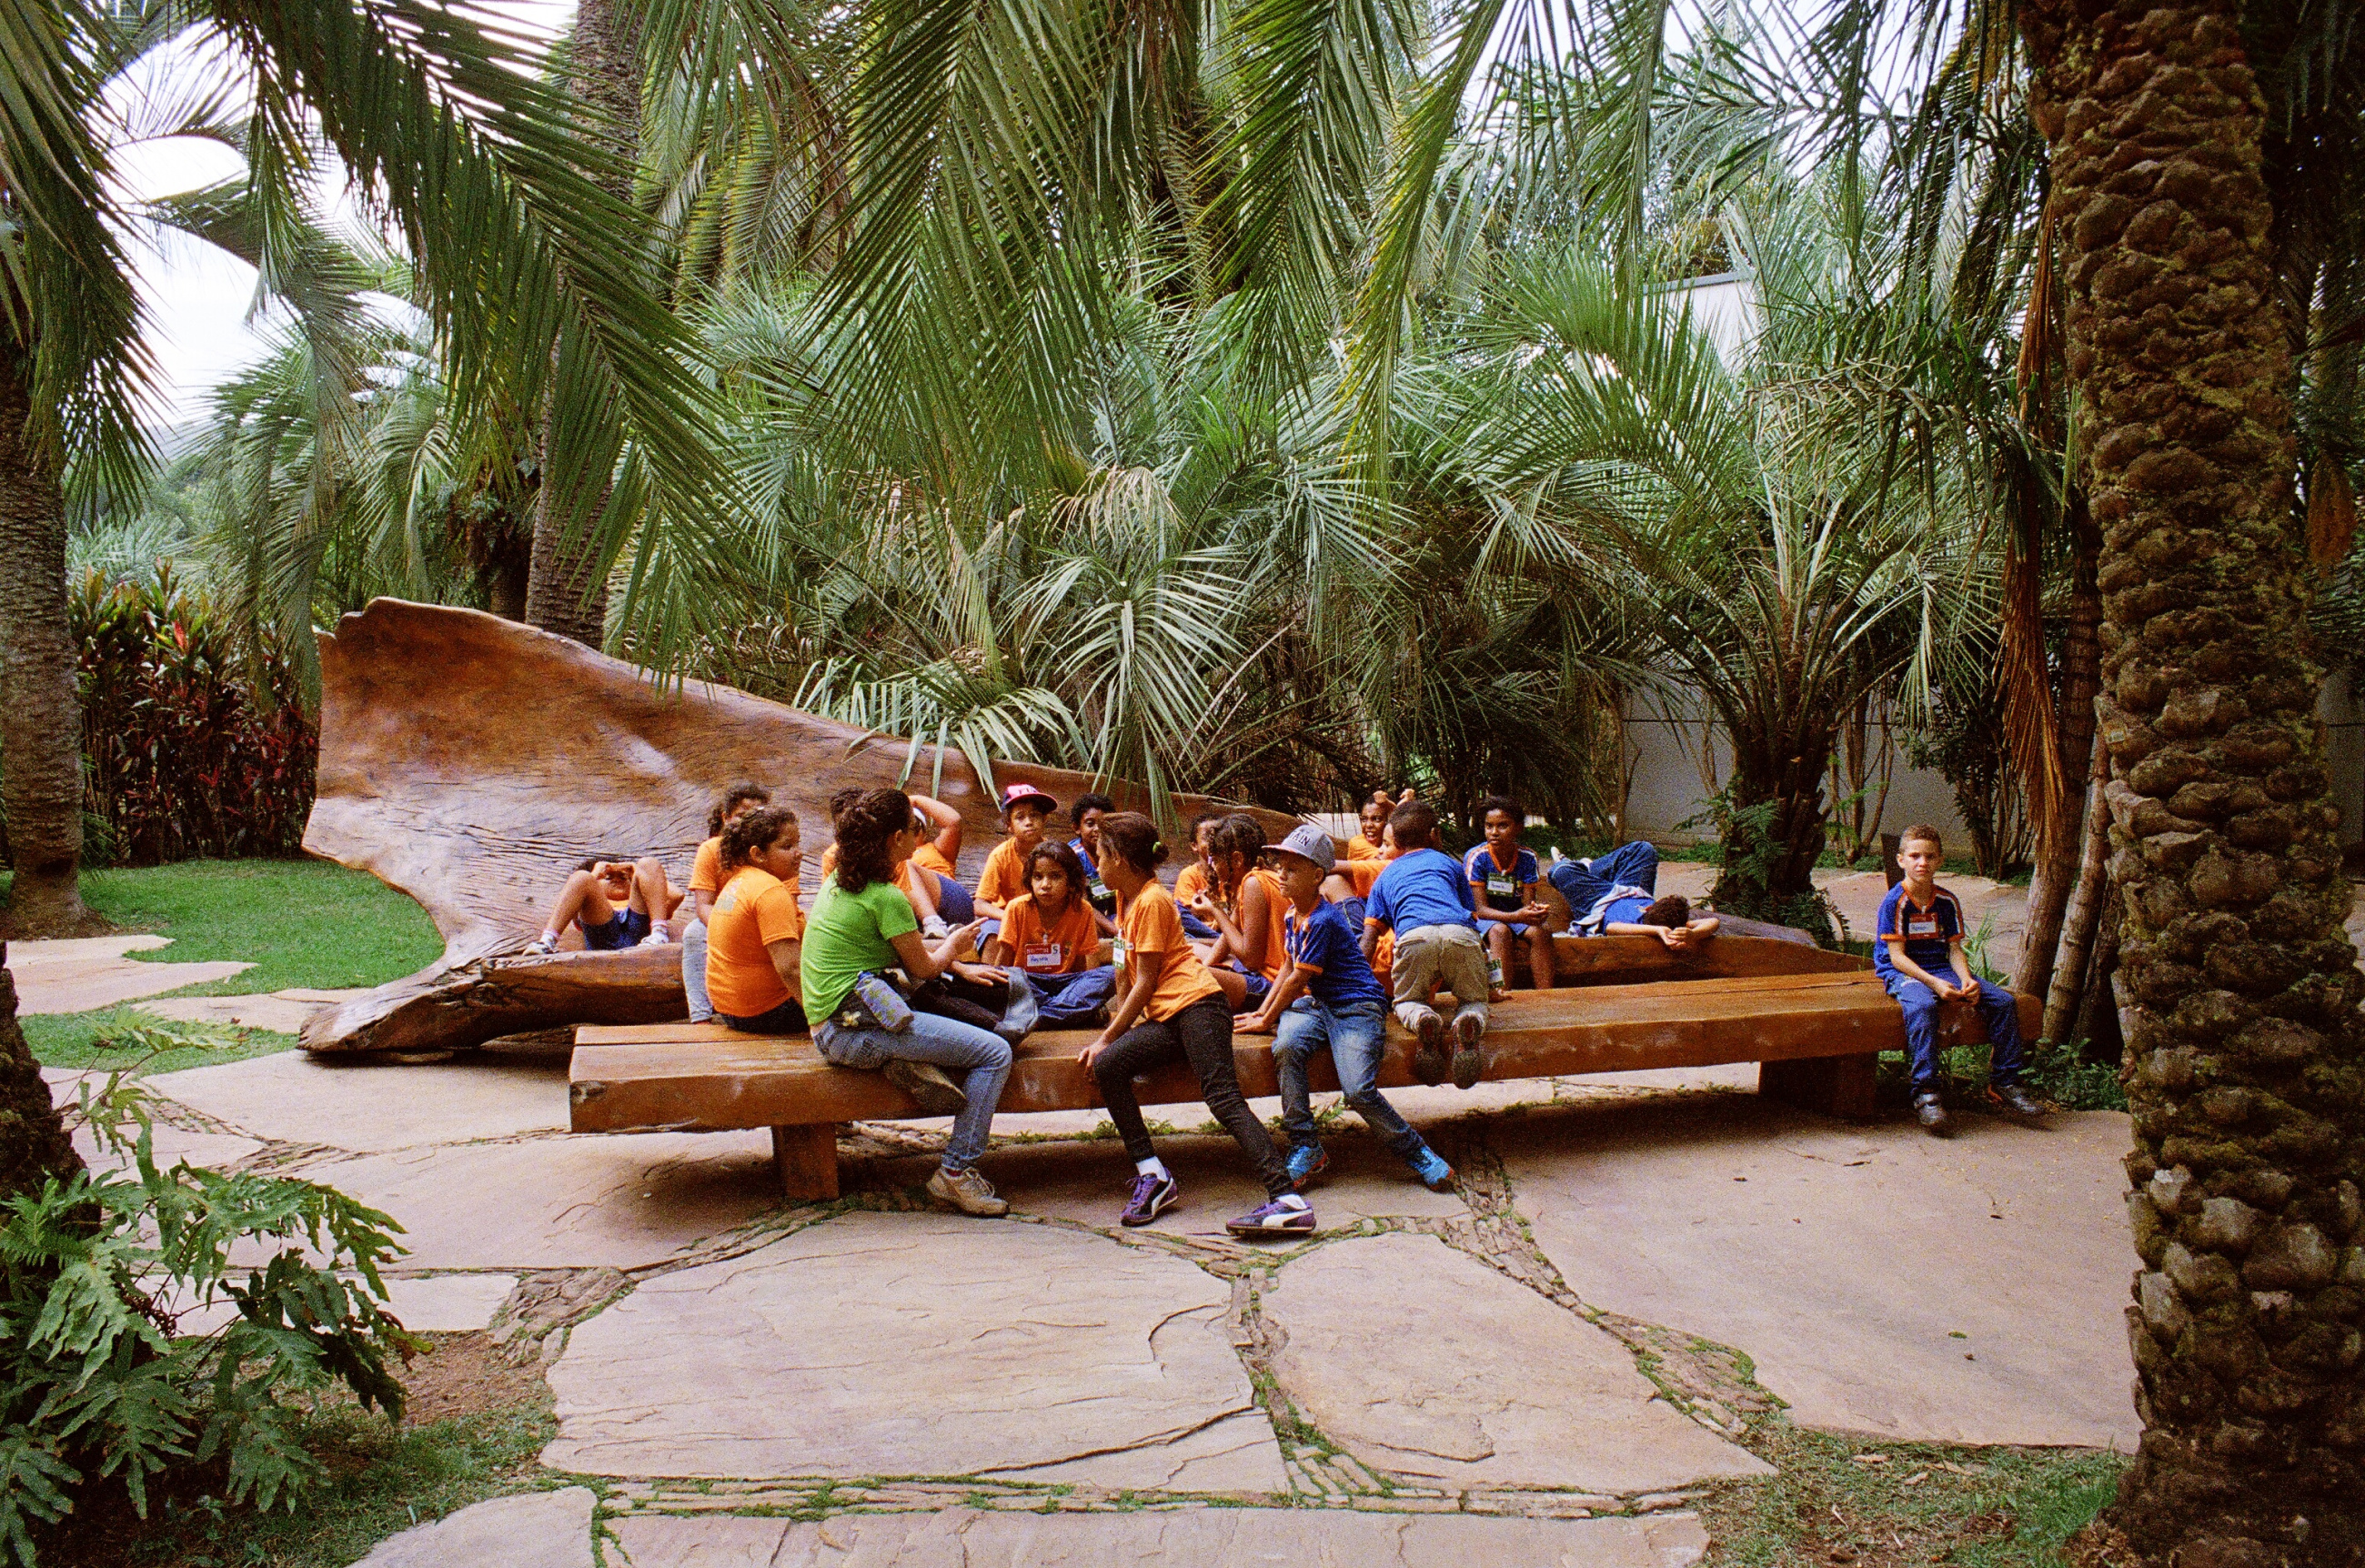 Local children from Inhotim's school outreach program gather on one of the park's trademark benches by Brazilian designer Hugo França.